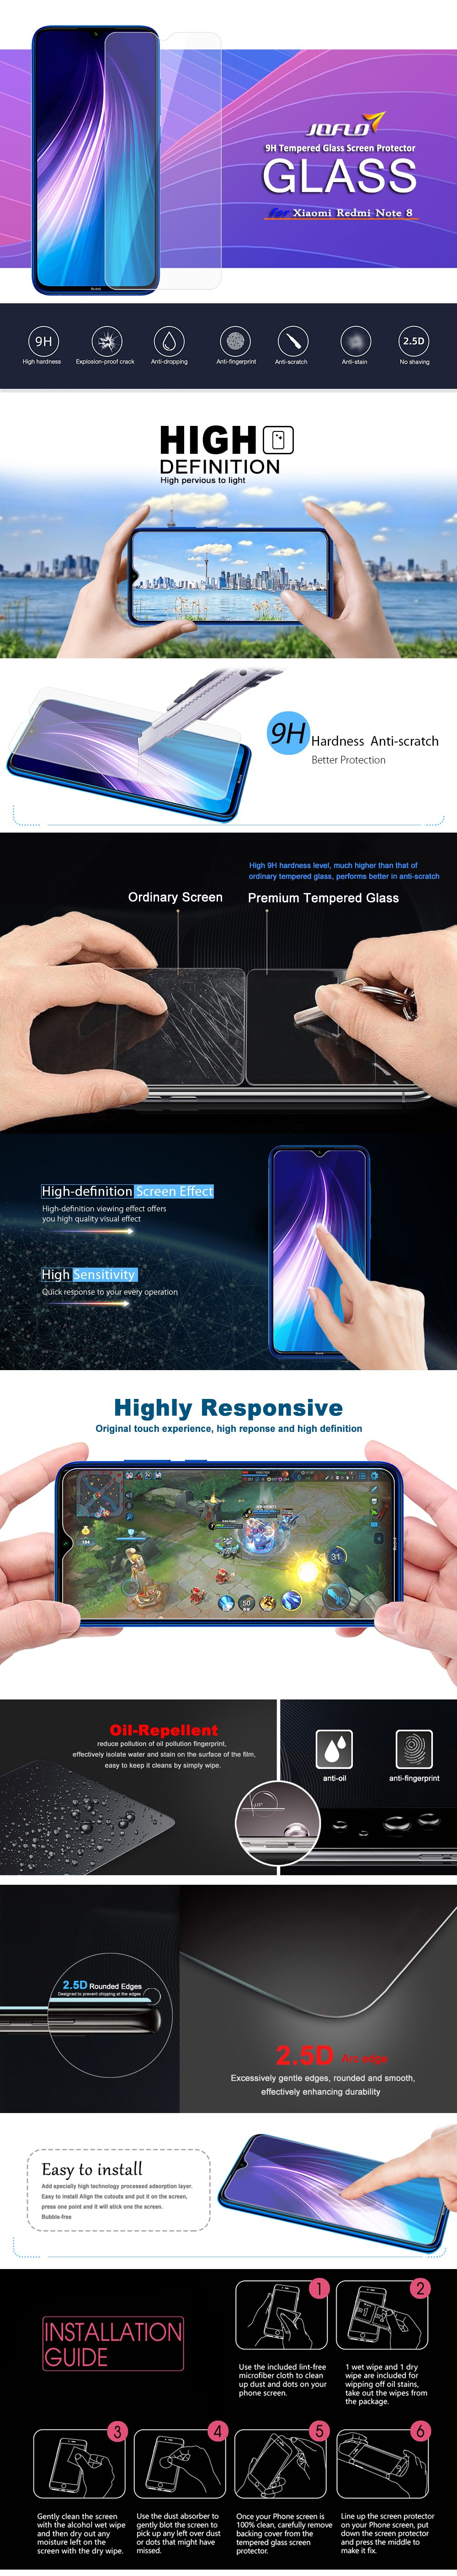 9H Tempered Glass Screen Protector Film + Lens  Film for Xiaomi Redmi Note 8 - Transparent 1pc